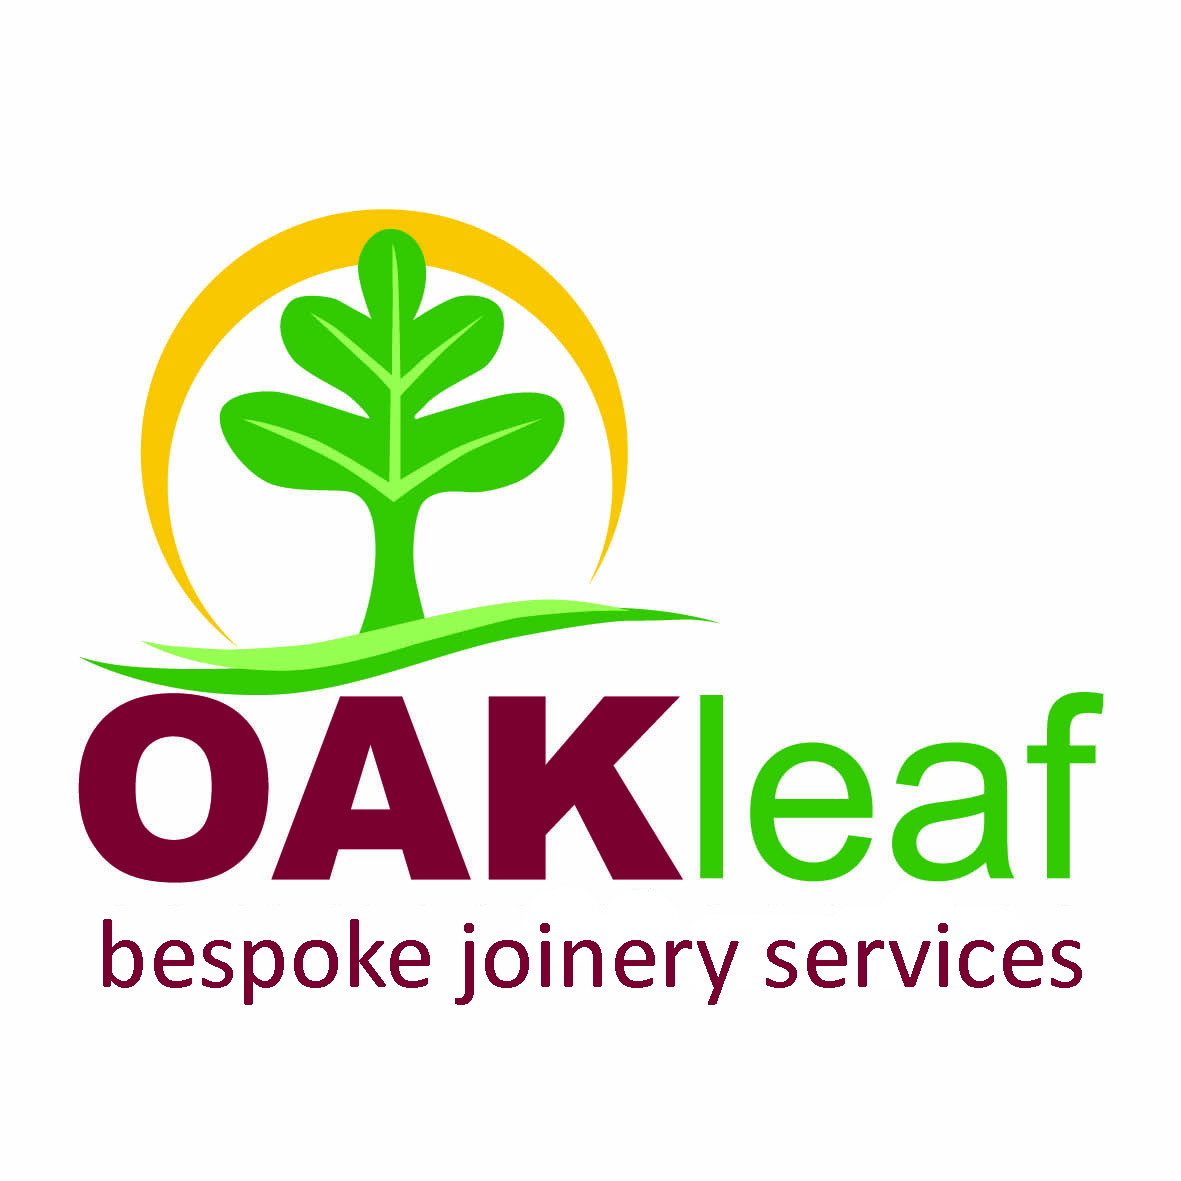 OAKLEAF BESPOKE JOINERY SERVICES